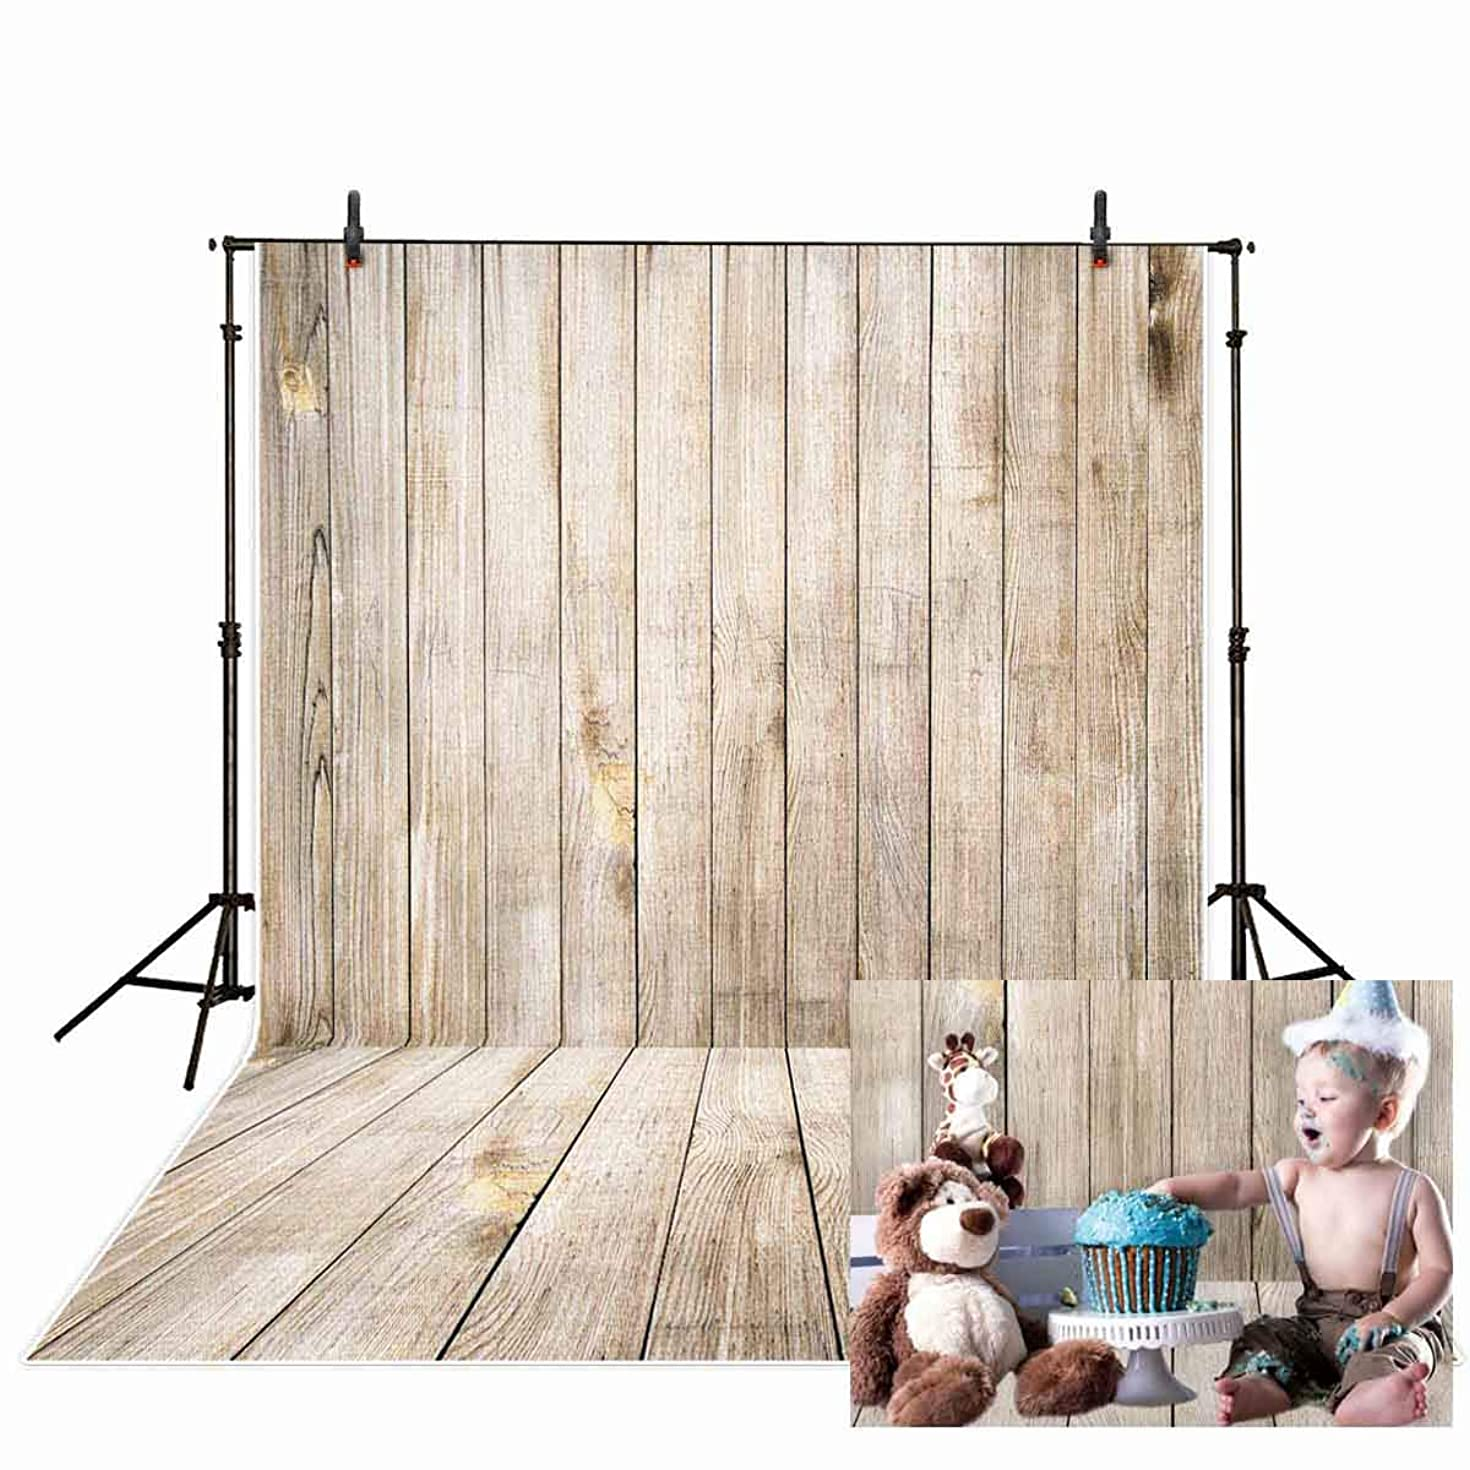 Allenjoy 5x7ft Seamless Thin Vinyl Wooden Floor Pattern Photography Backdrops Newborn Baby Shower Wood Wall Photo Background Photo Studio Props Photoshoot photocall